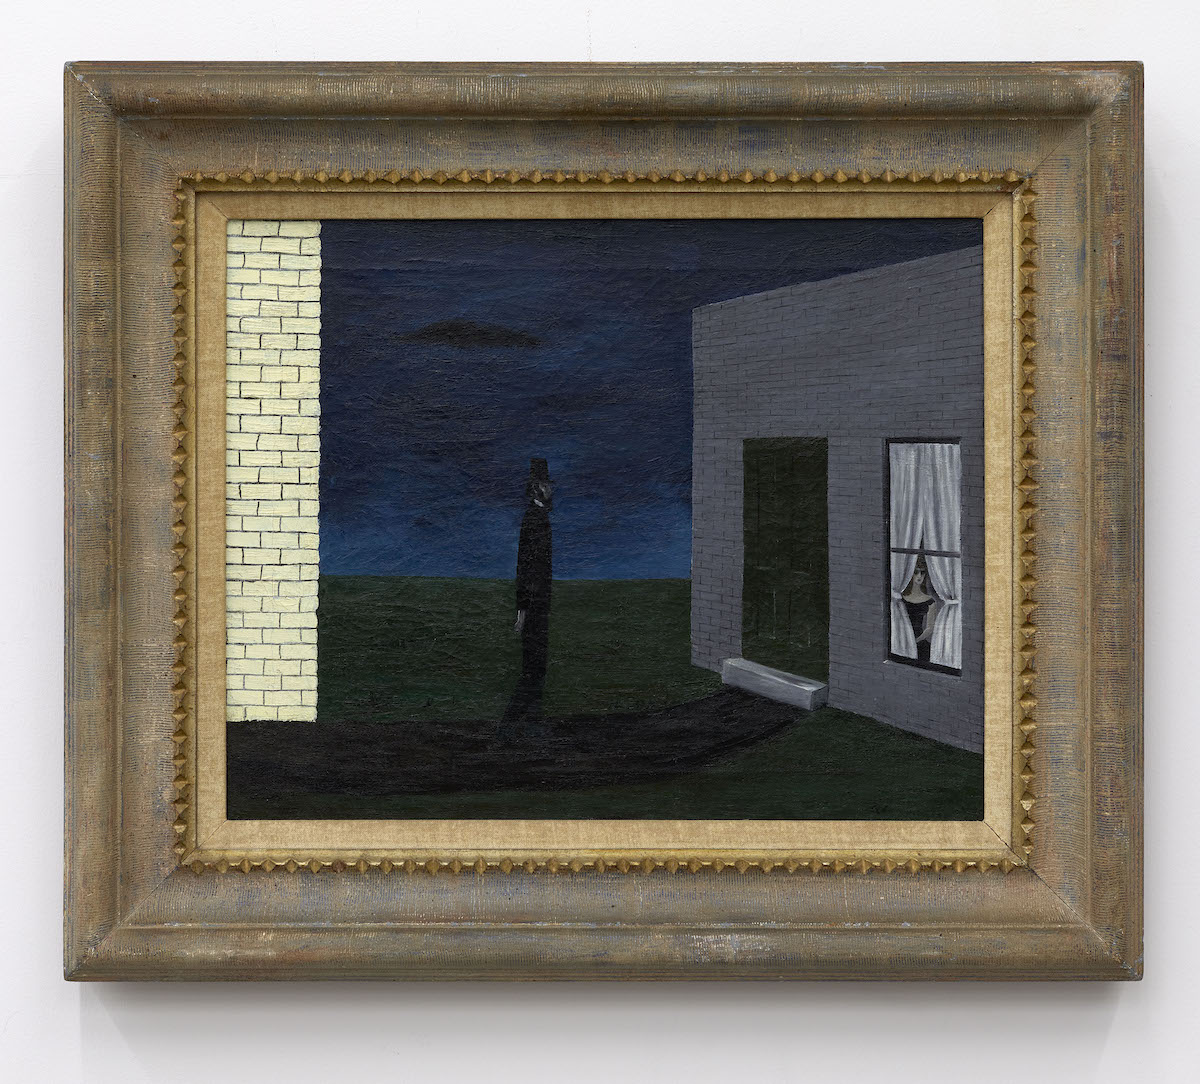 Gertrude Abercrombie, 'The Visit,' 1944, oil on canvas.